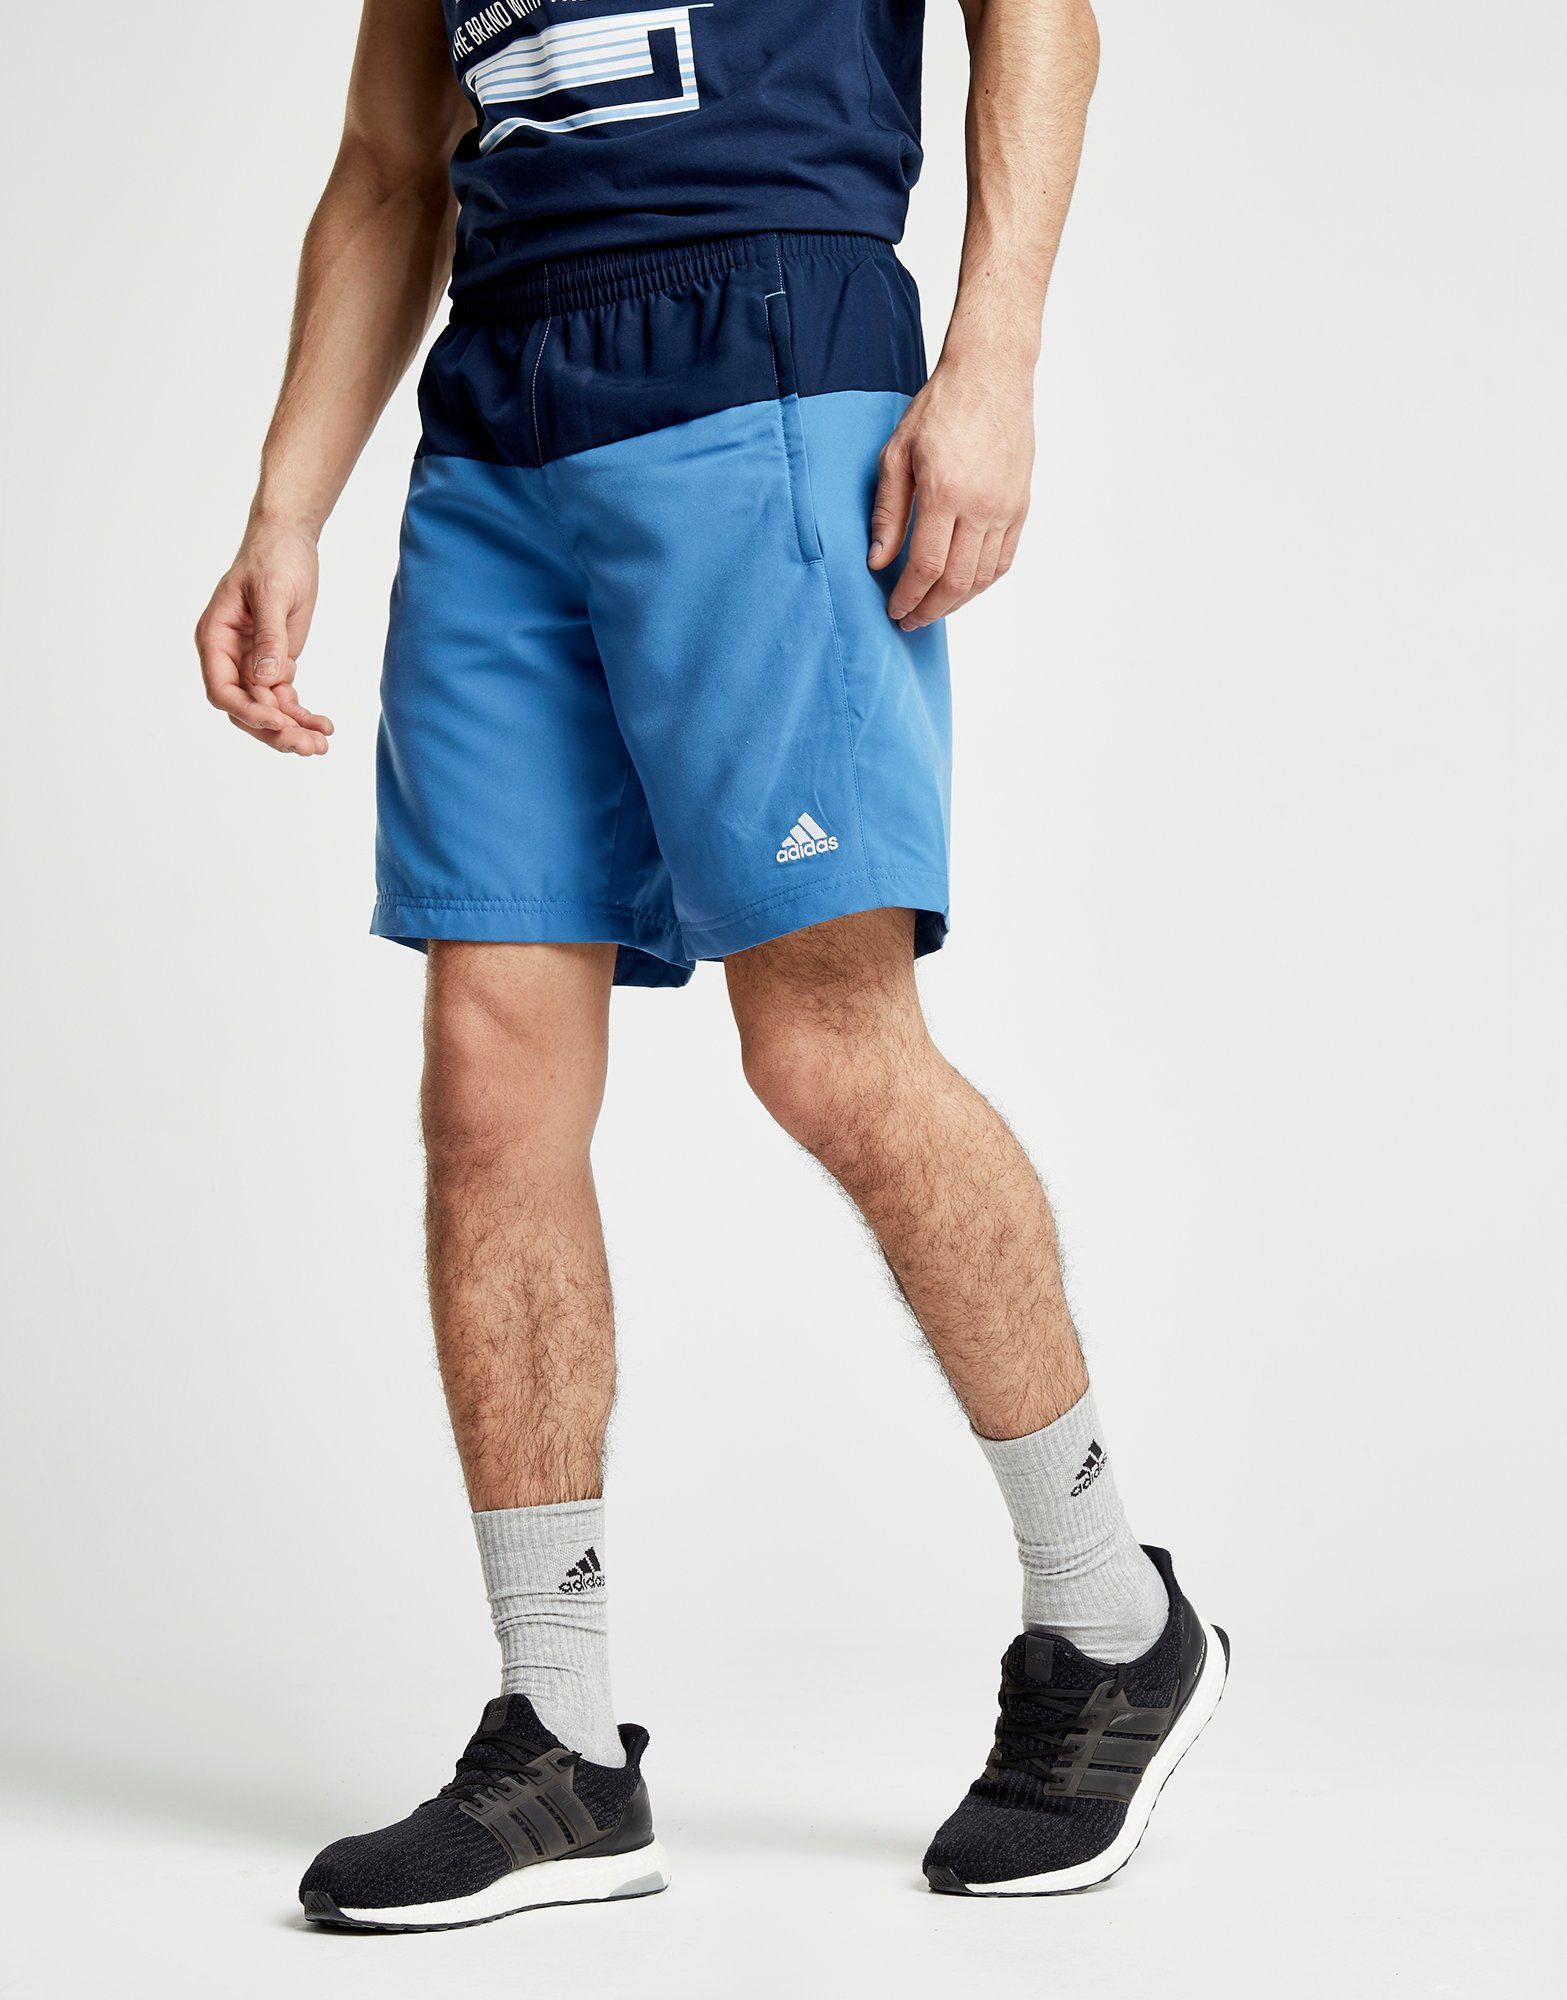 Adidas Short De Bain Colourblock Homme by Adidas